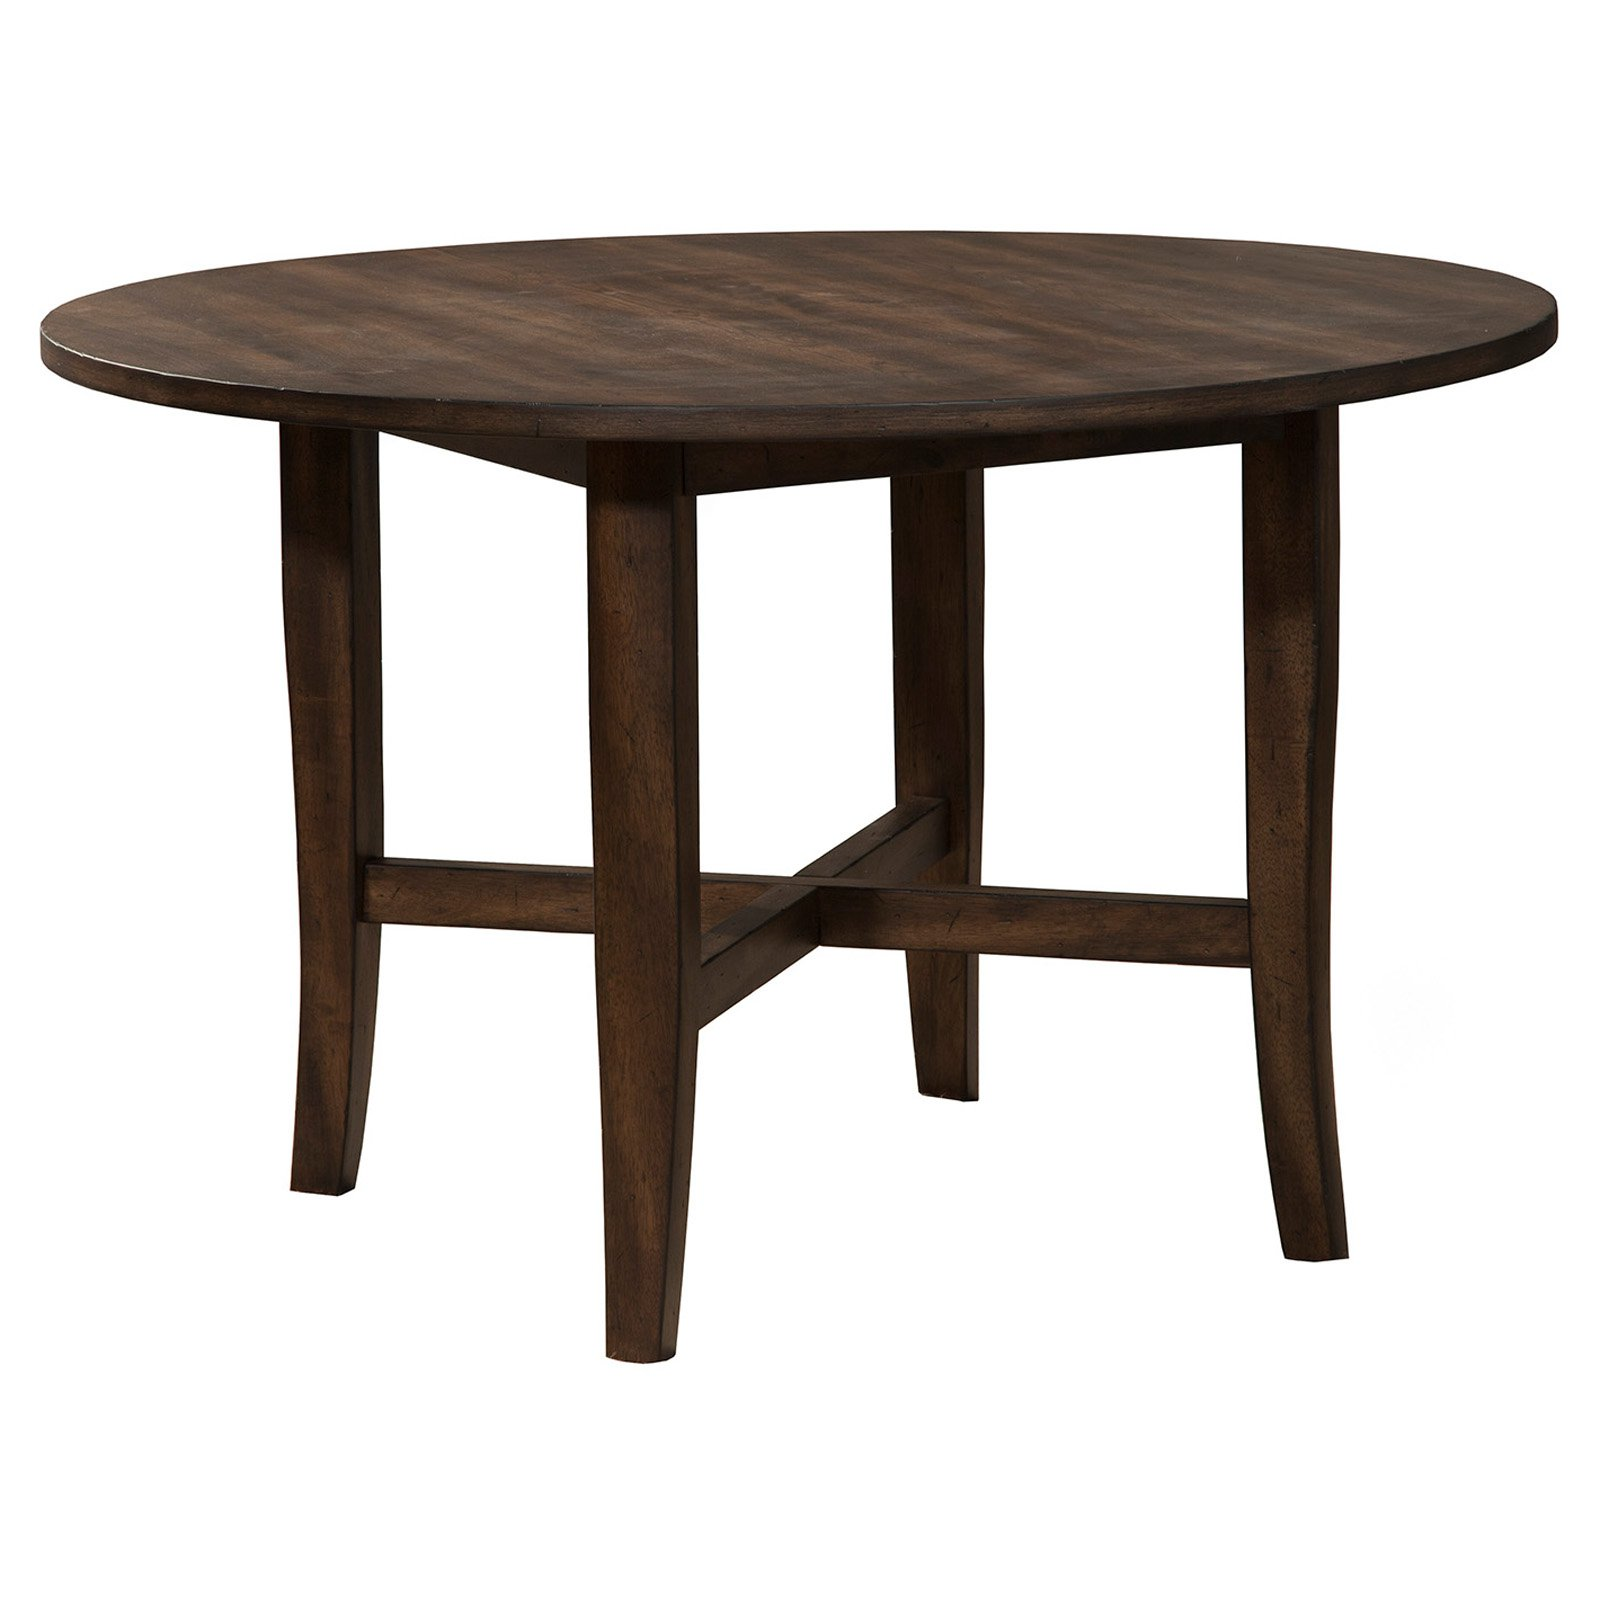 Alpine Furniture Arendal Round Dining Table by Alpine Furniture